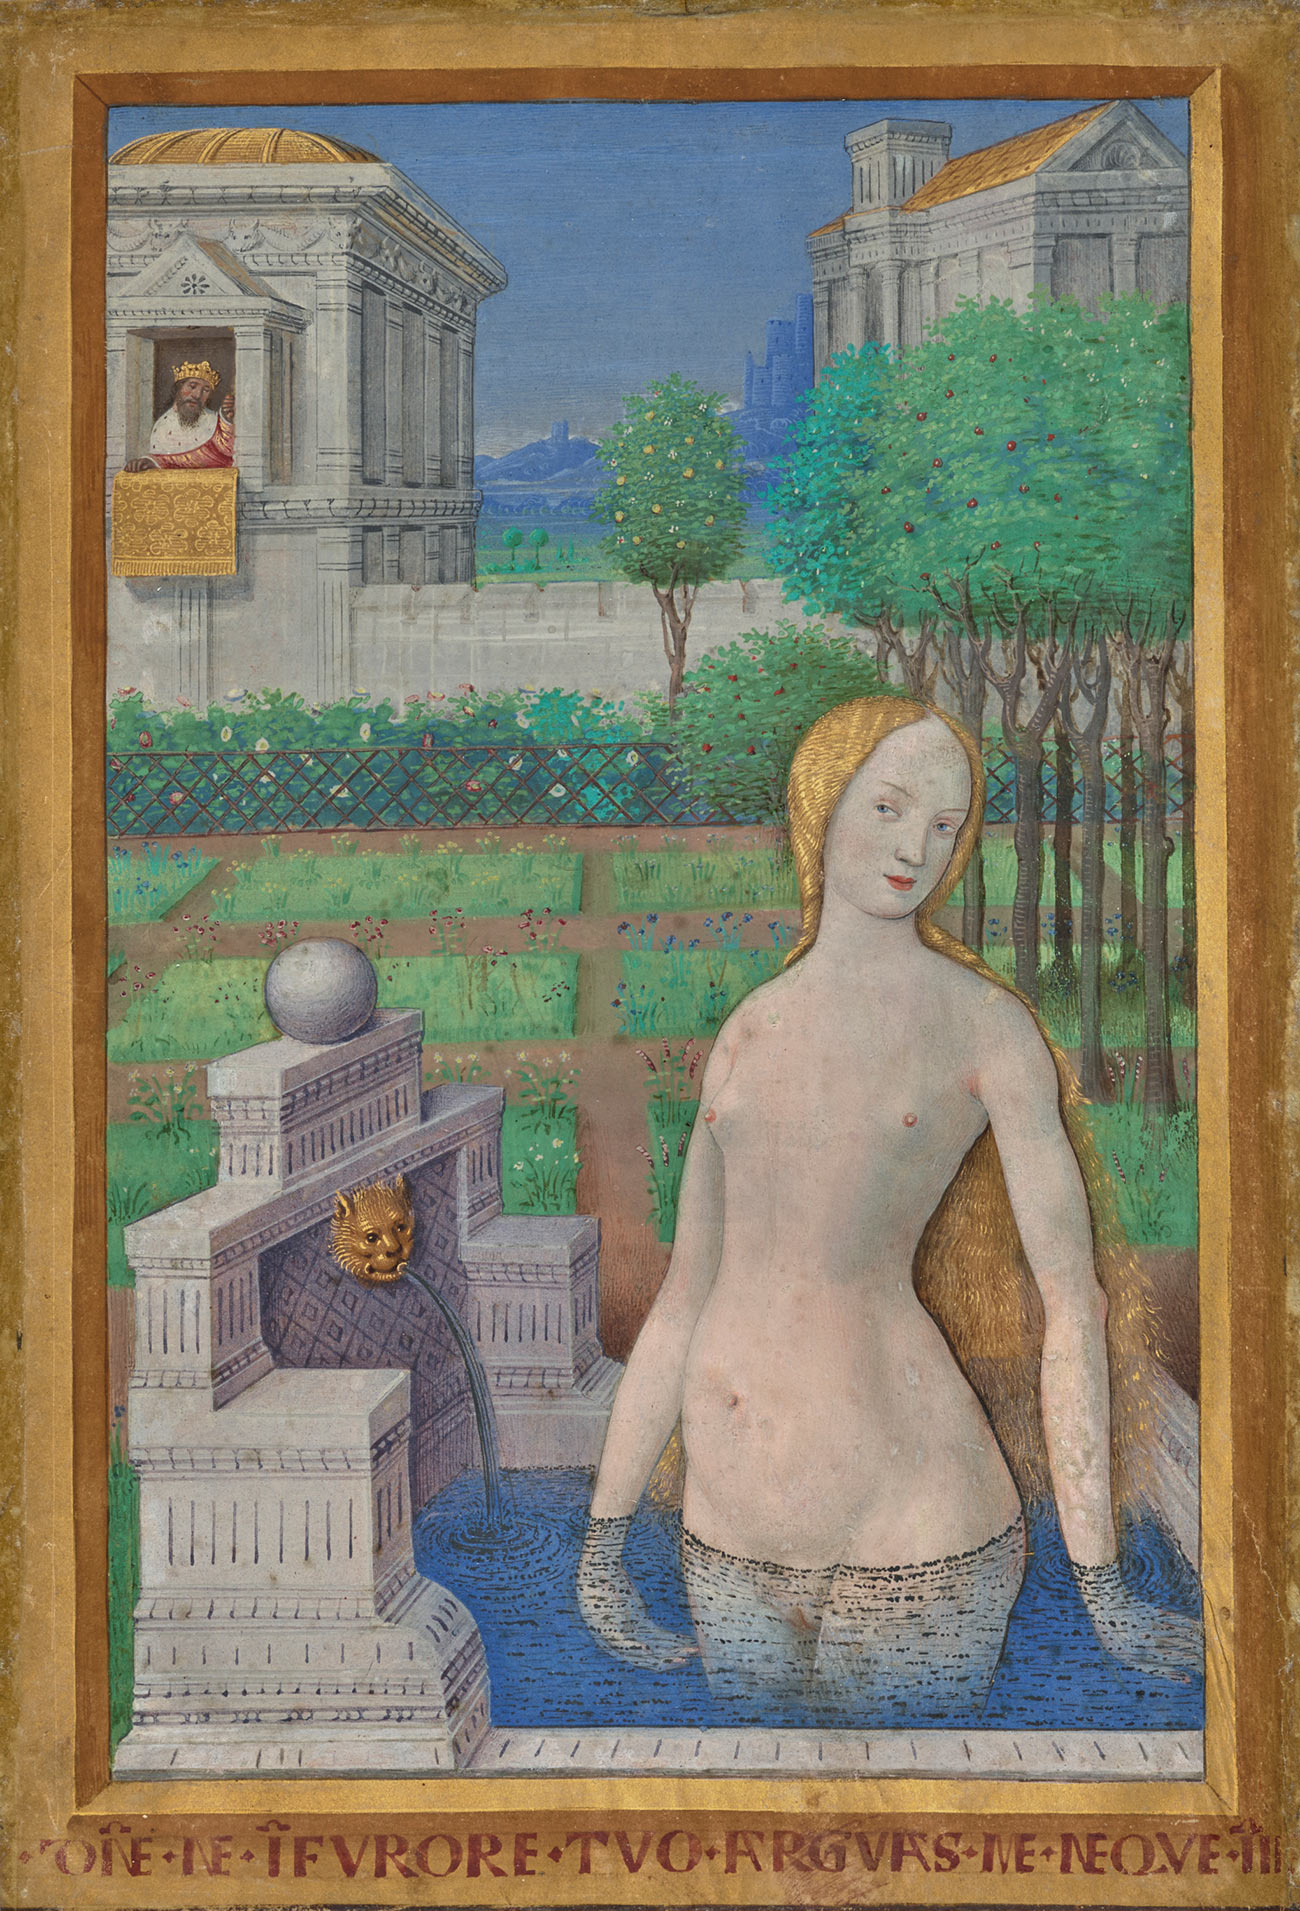 Manuscript illumination of a naked woman in a bath up to her pubic area, thinly covered by a diaphanous veil